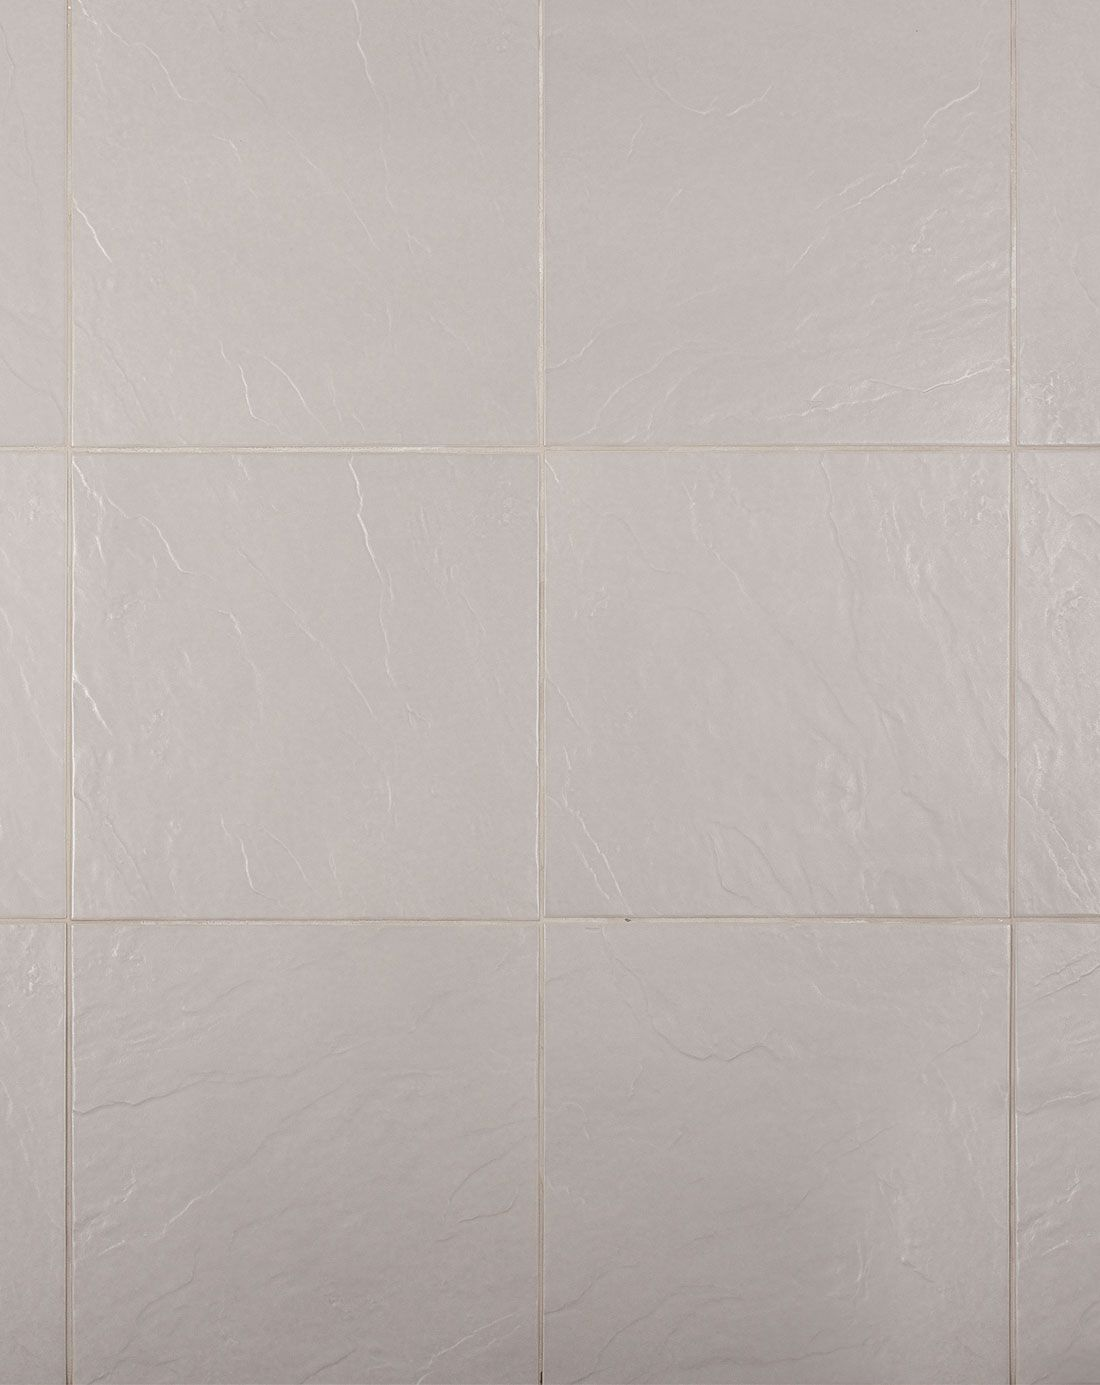 Kitchen Floor Tiles Texture Vilamoura Beige Kitchen Floor Tiles A Light Clay Coloured Tile